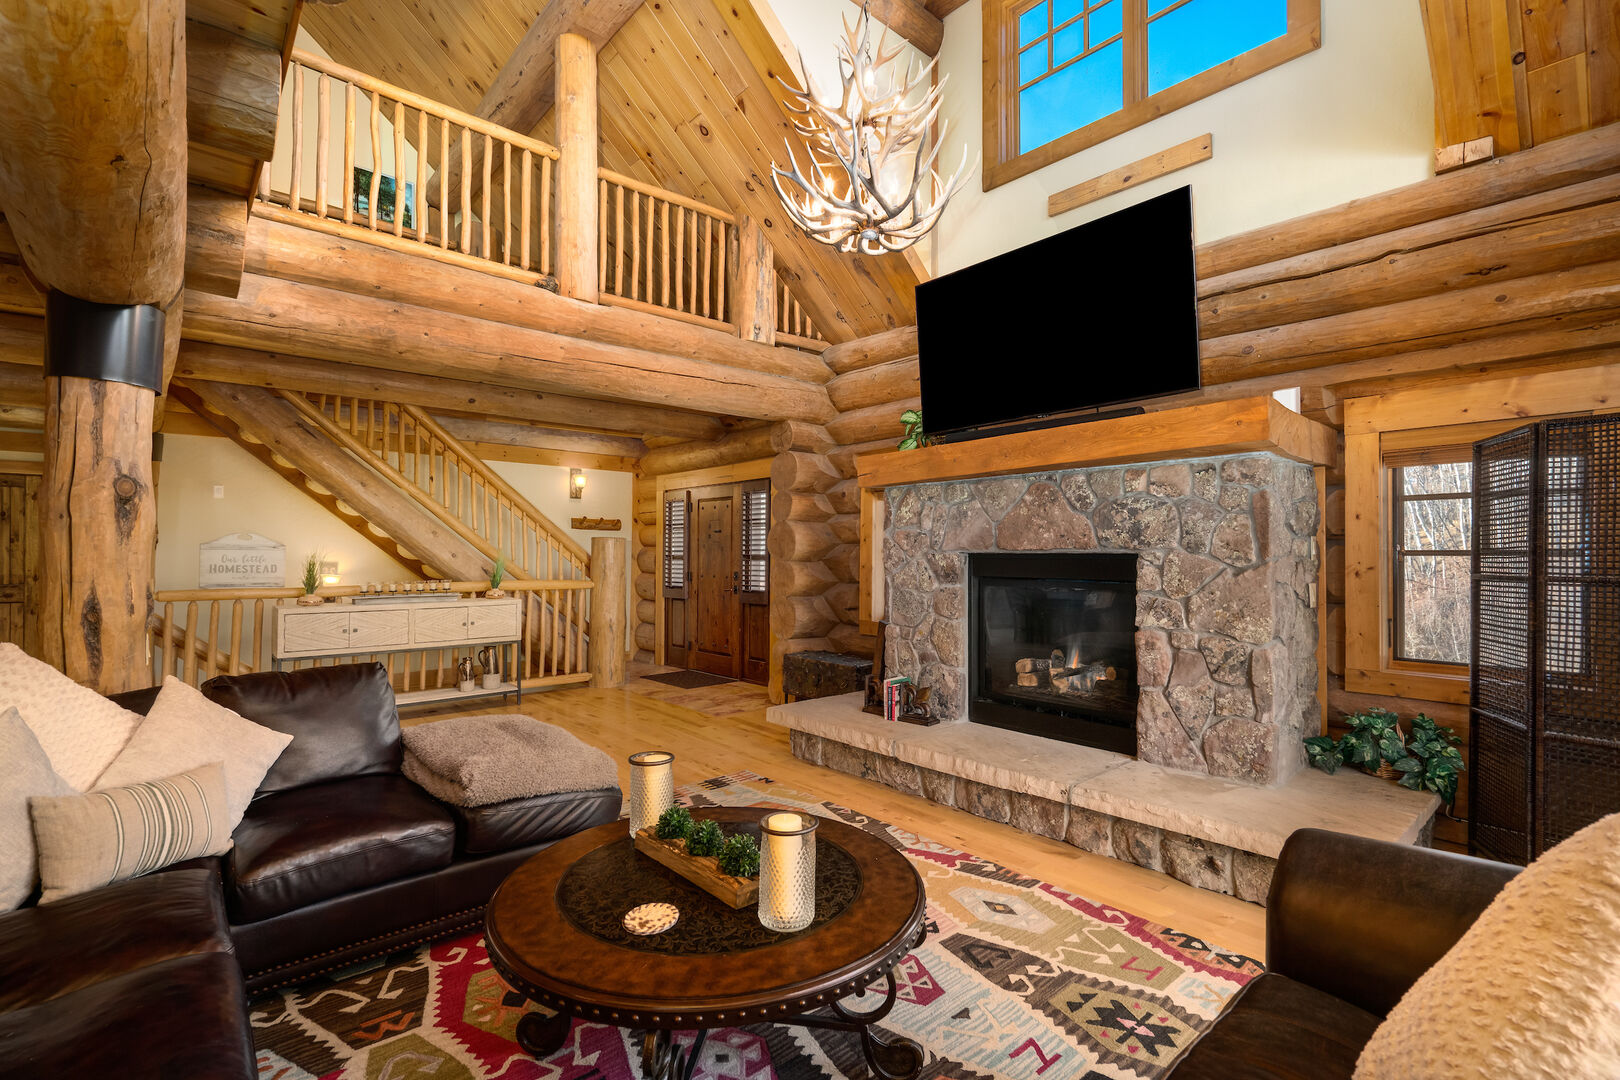 Gas fireplace, large TV above